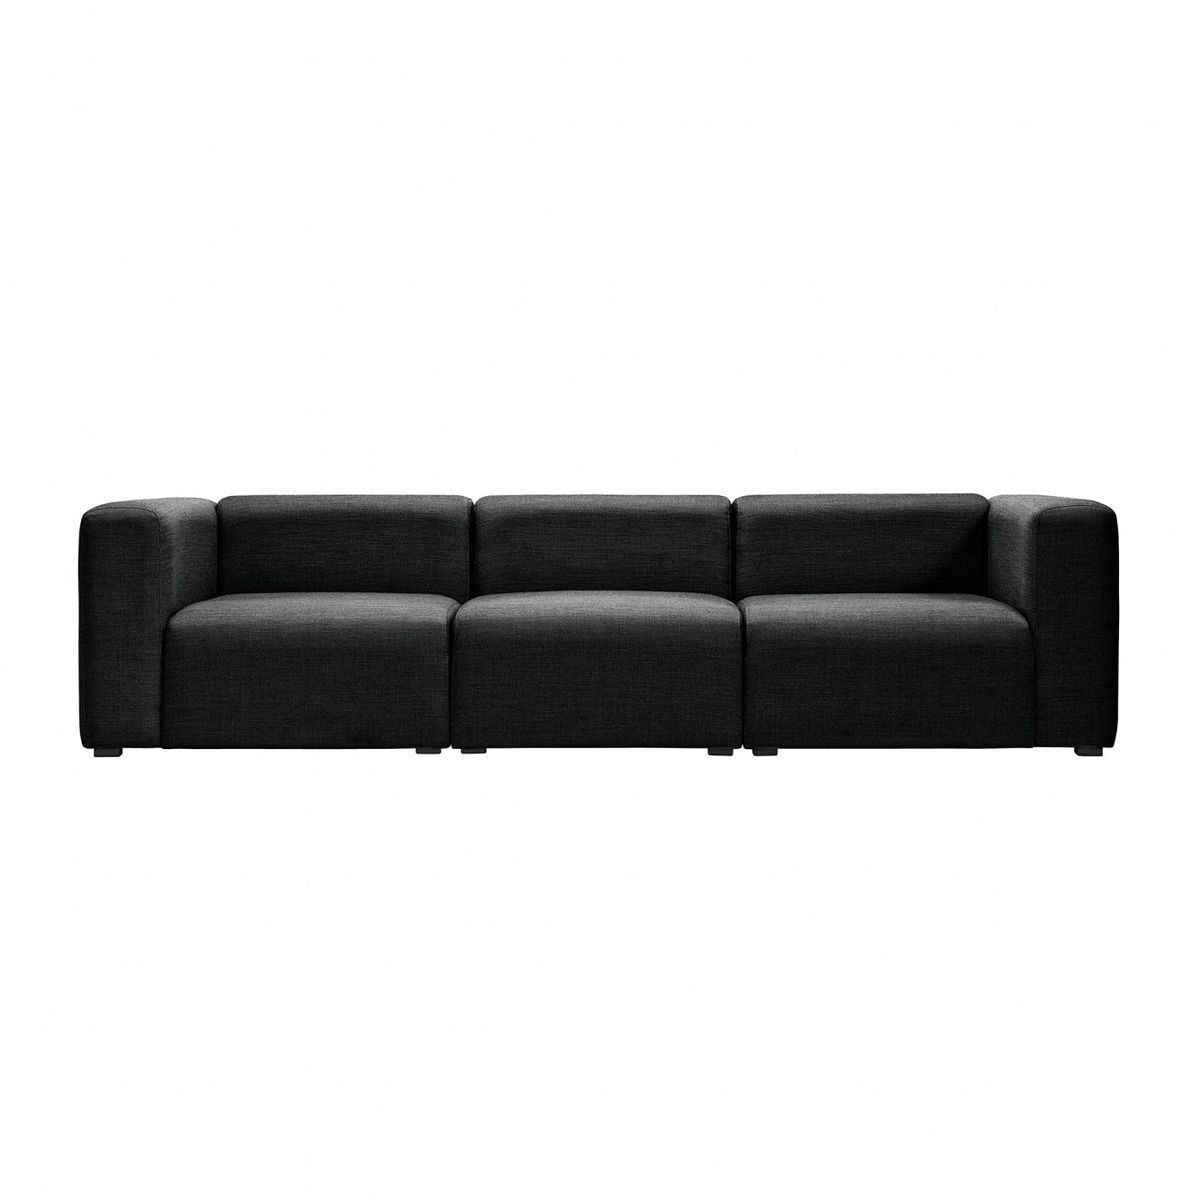 hay mags sofa fabrics ripple right arm facing 2 piece corner 3 seater fabric surface sofas seating